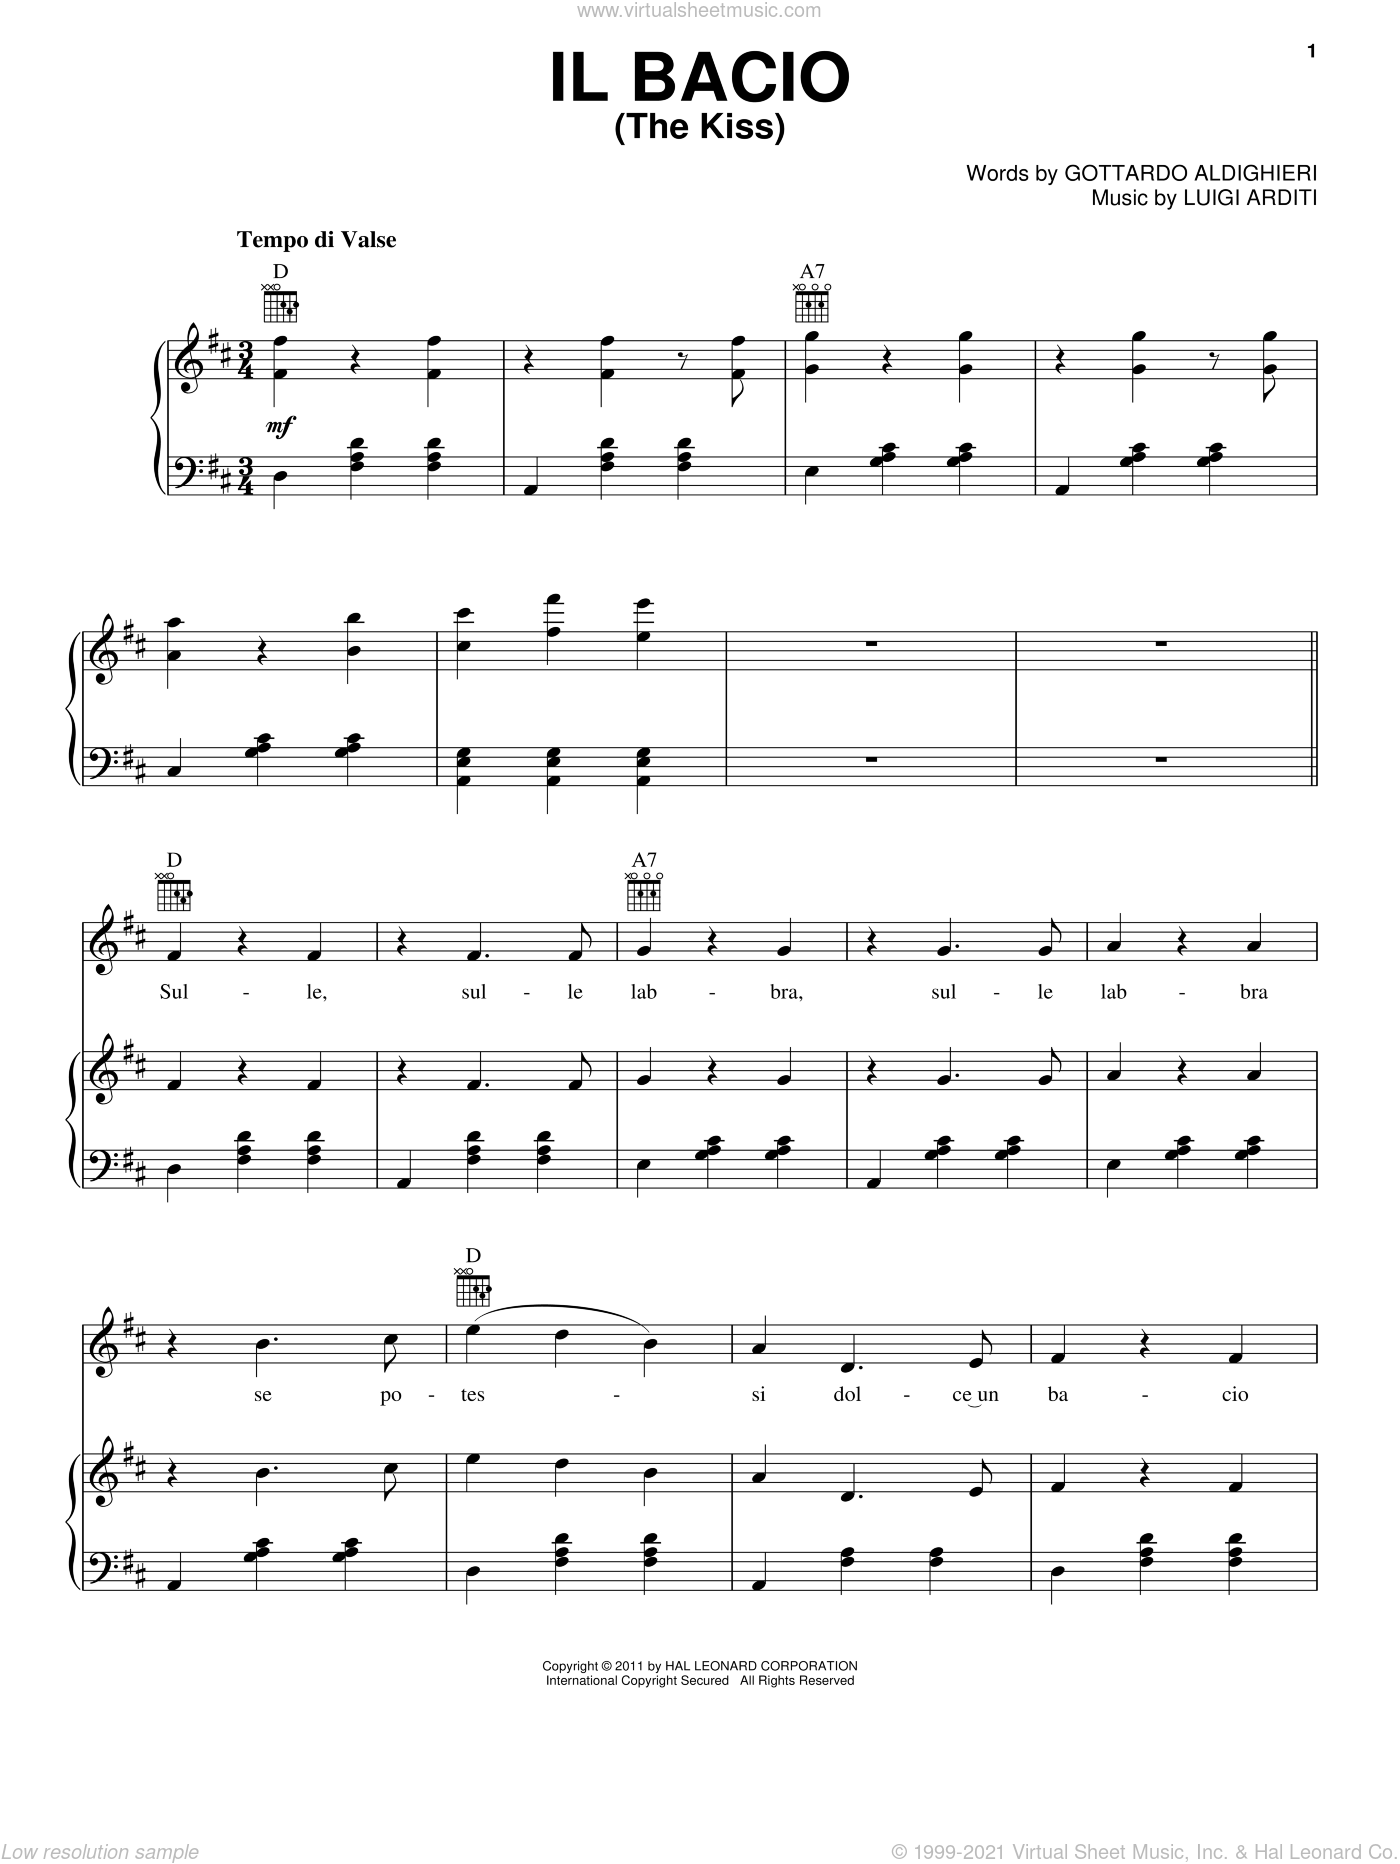 Il Bacio (The Kiss) sheet music for voice, piano or guitar by Luigi Arditi